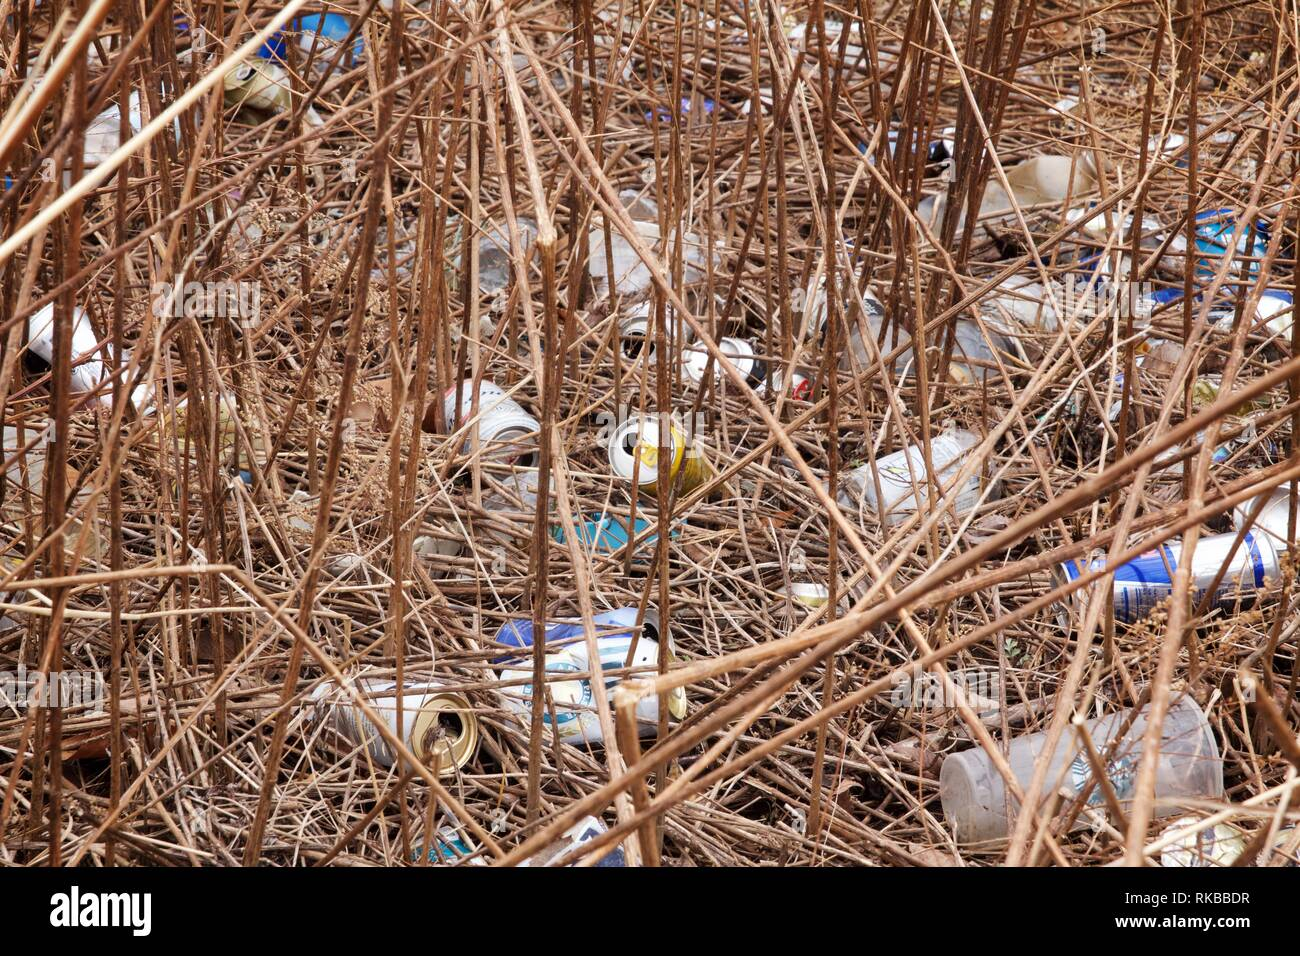 Croydon, Pennsylvania, USA - February 6, 2019: Cans and bottles litter a wetland restoration project that is part of the Delaware River watershed. - Stock Image